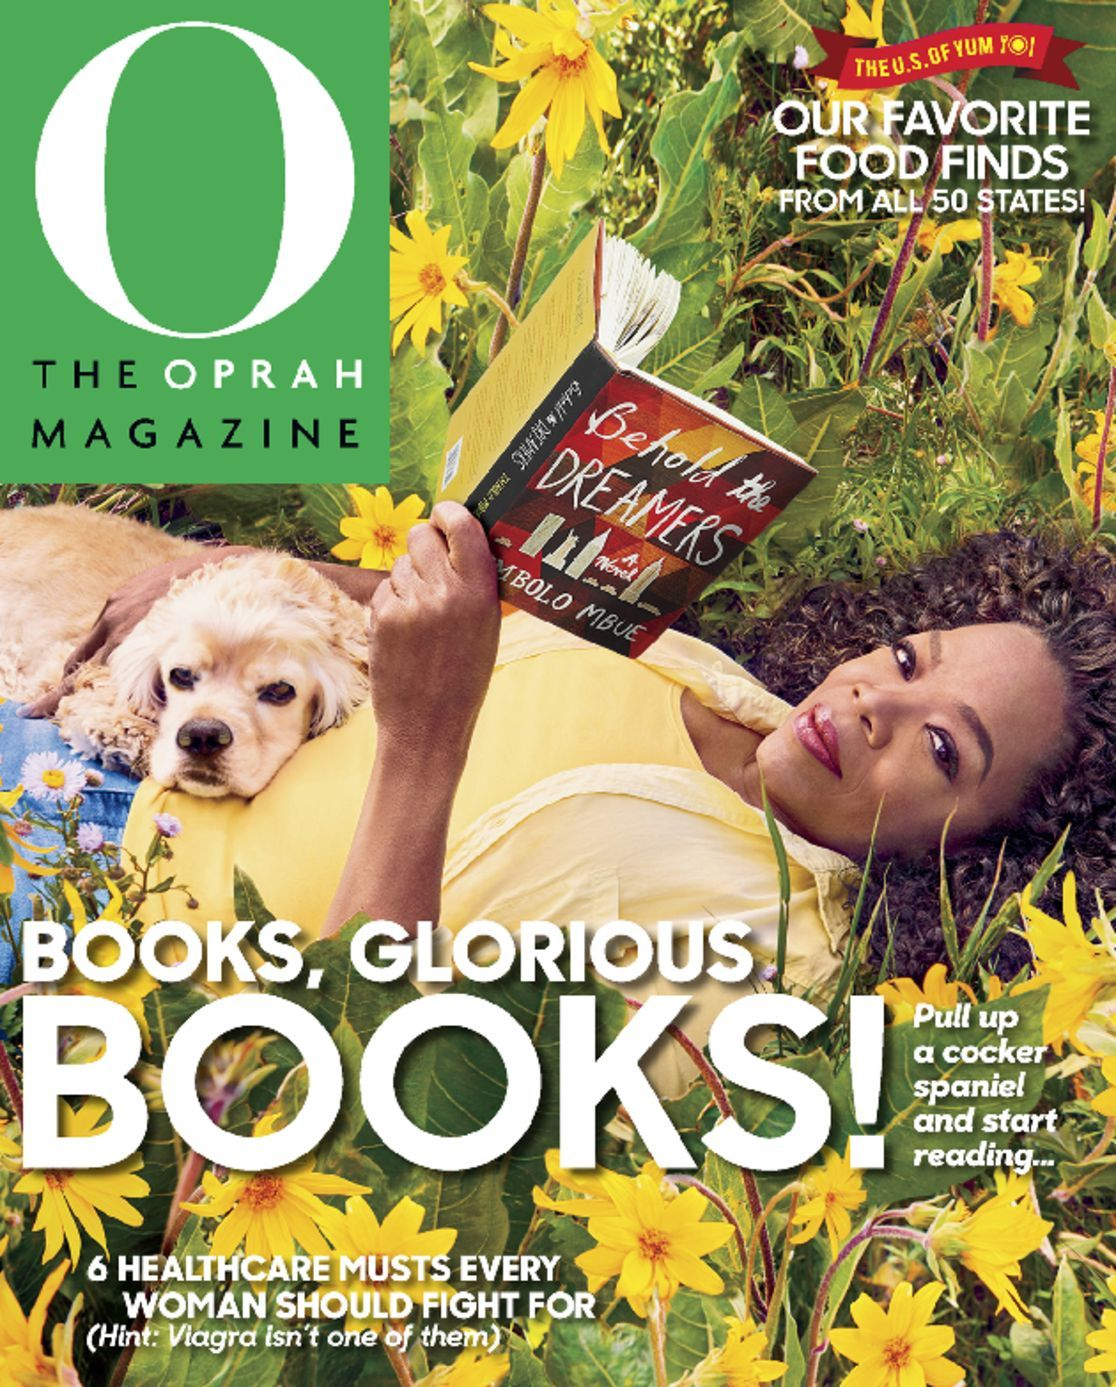 American Scientist Magazine Subscription: Subscribe To O Magazine - DiscountMags.com